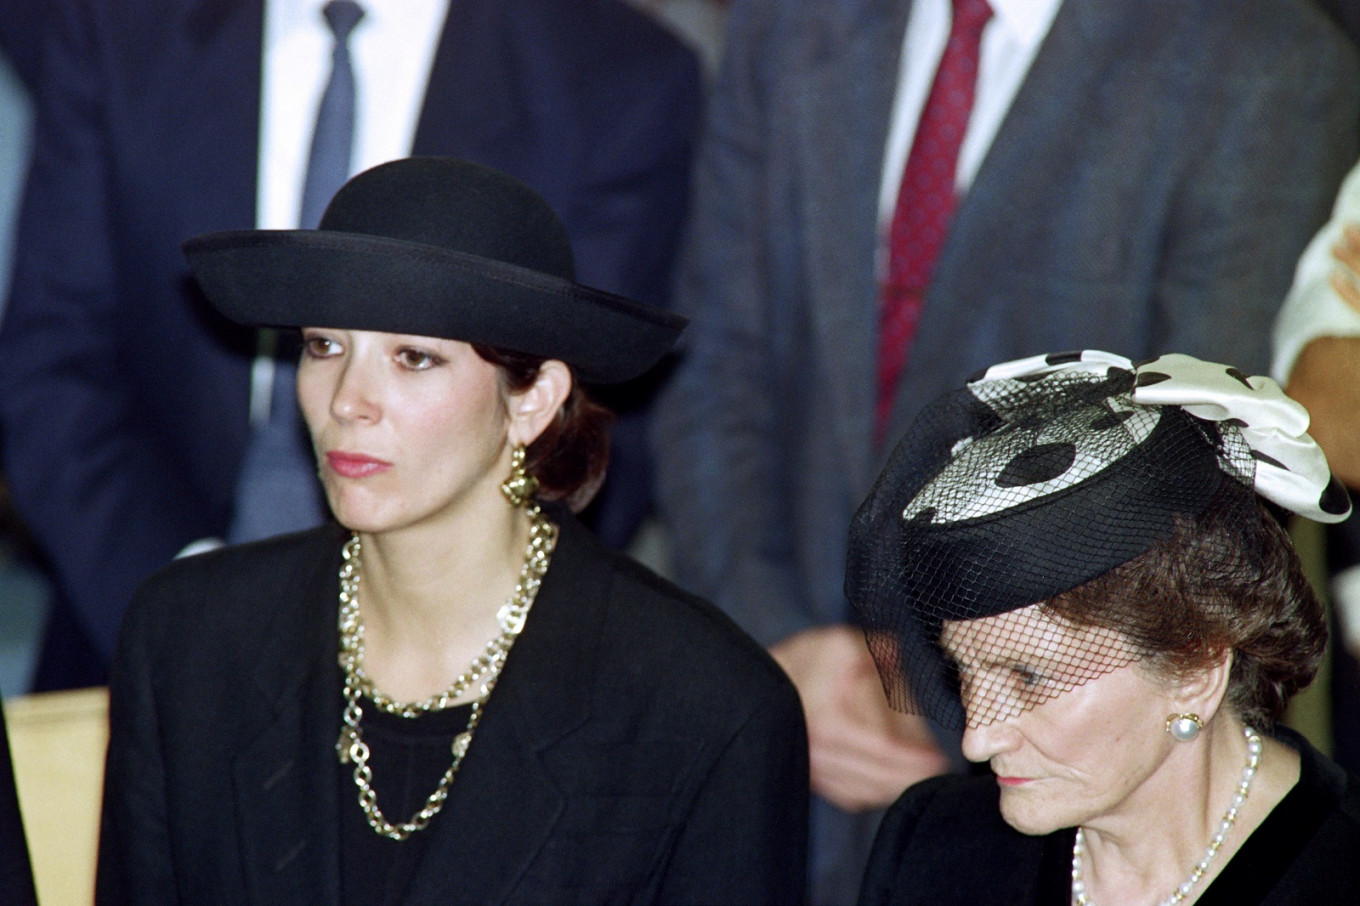 Writer Claims Prince Andrew Videotaped by Jeffrey Epstein Associate Ghislaine Maxwell